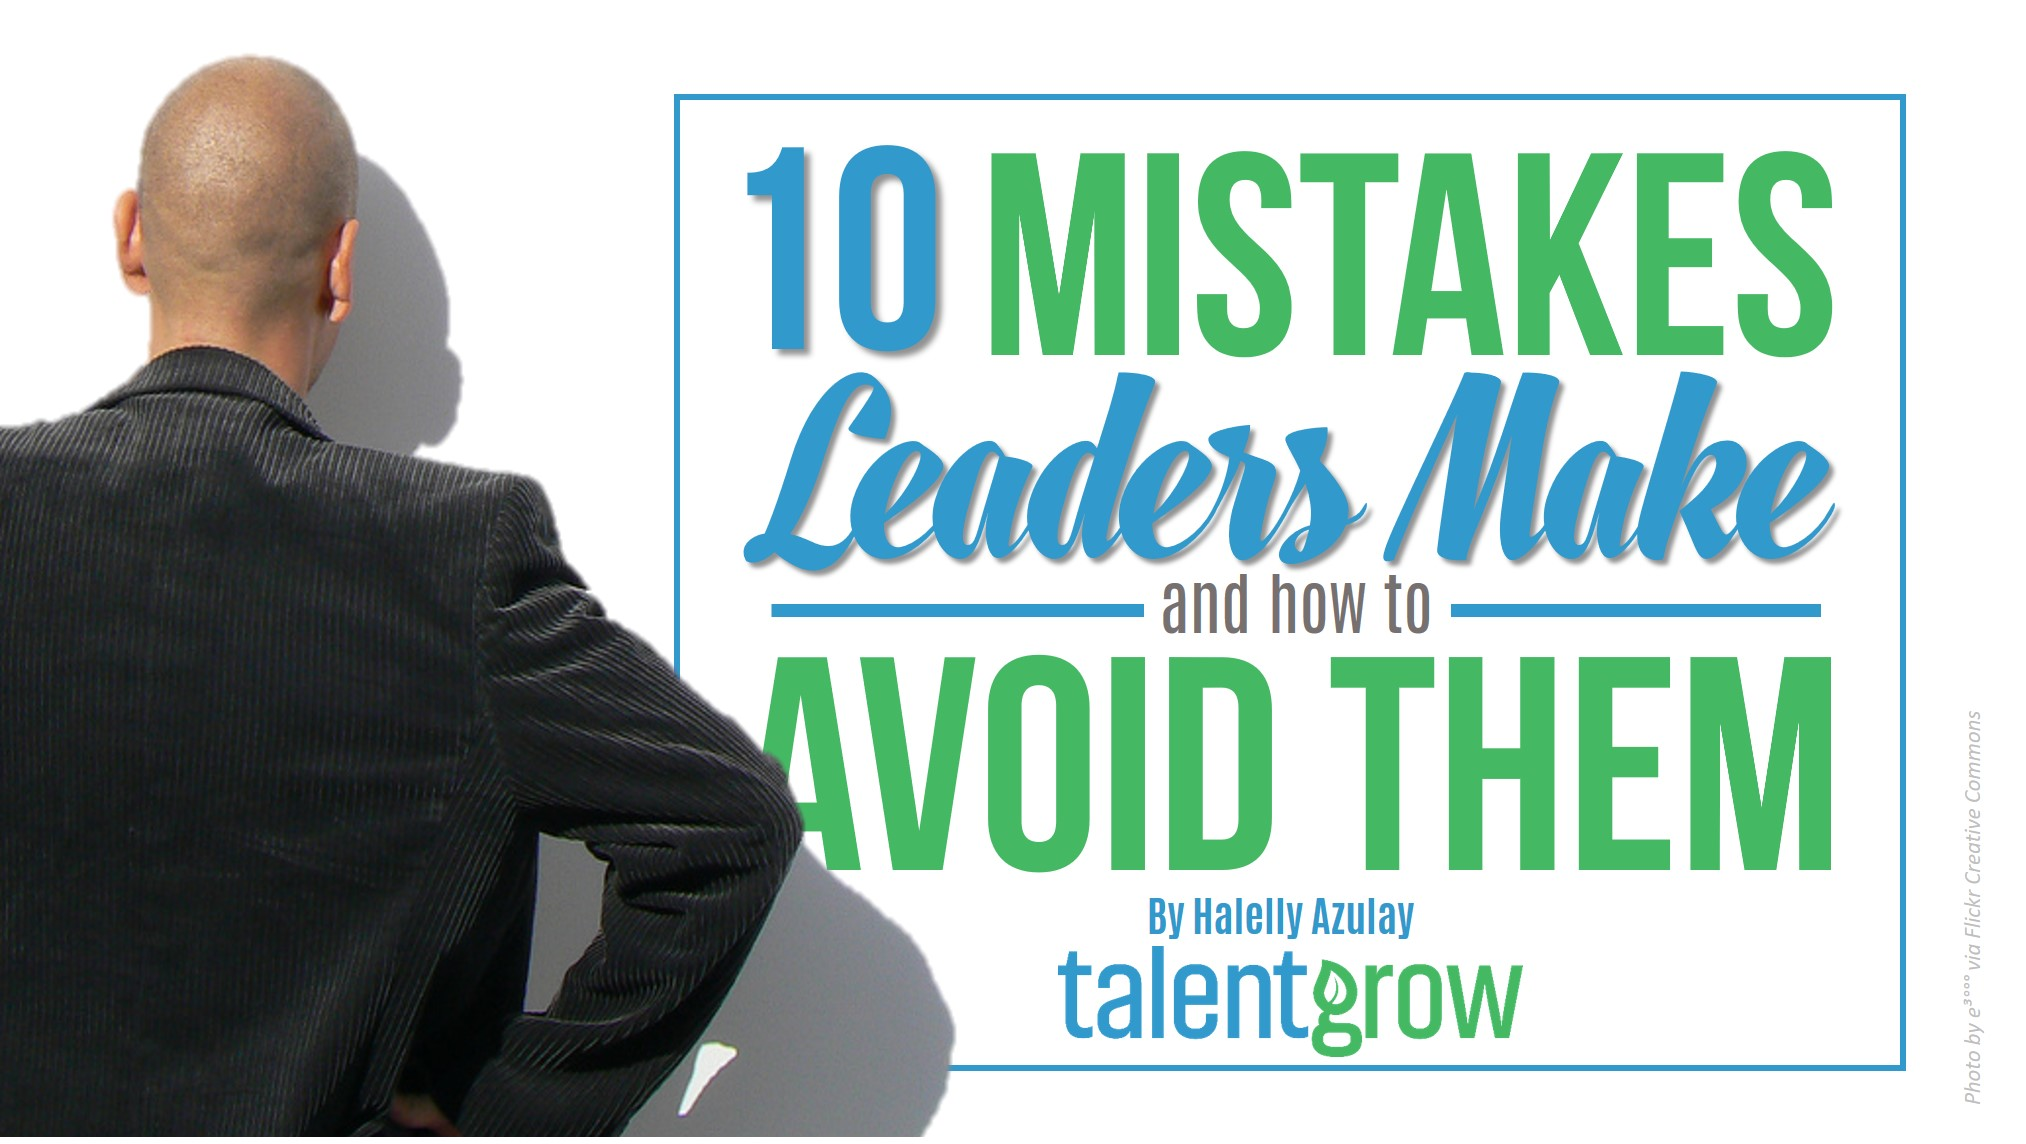 10 Mistakes Leaders Make and How to Avoid Them cover